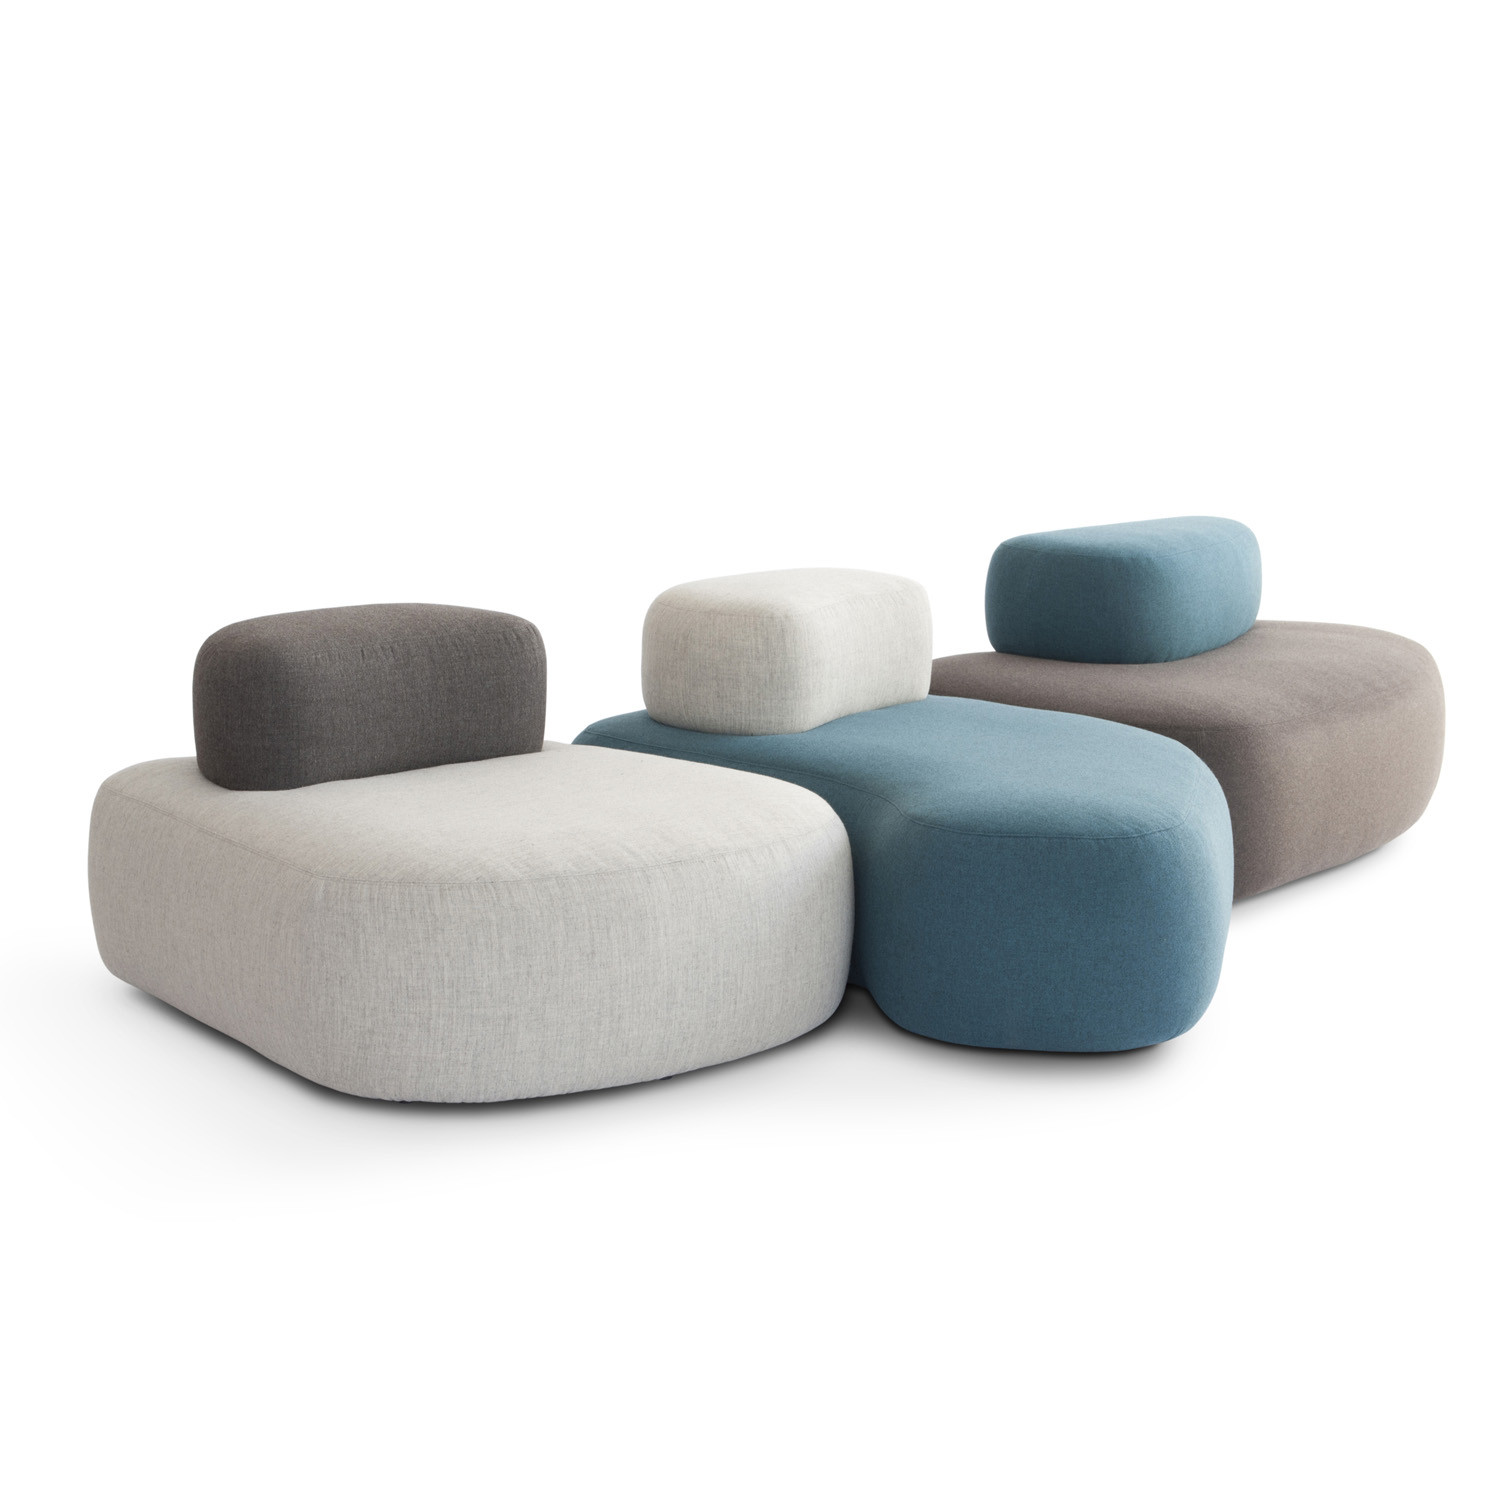 HM63 Upholstered Low Stools